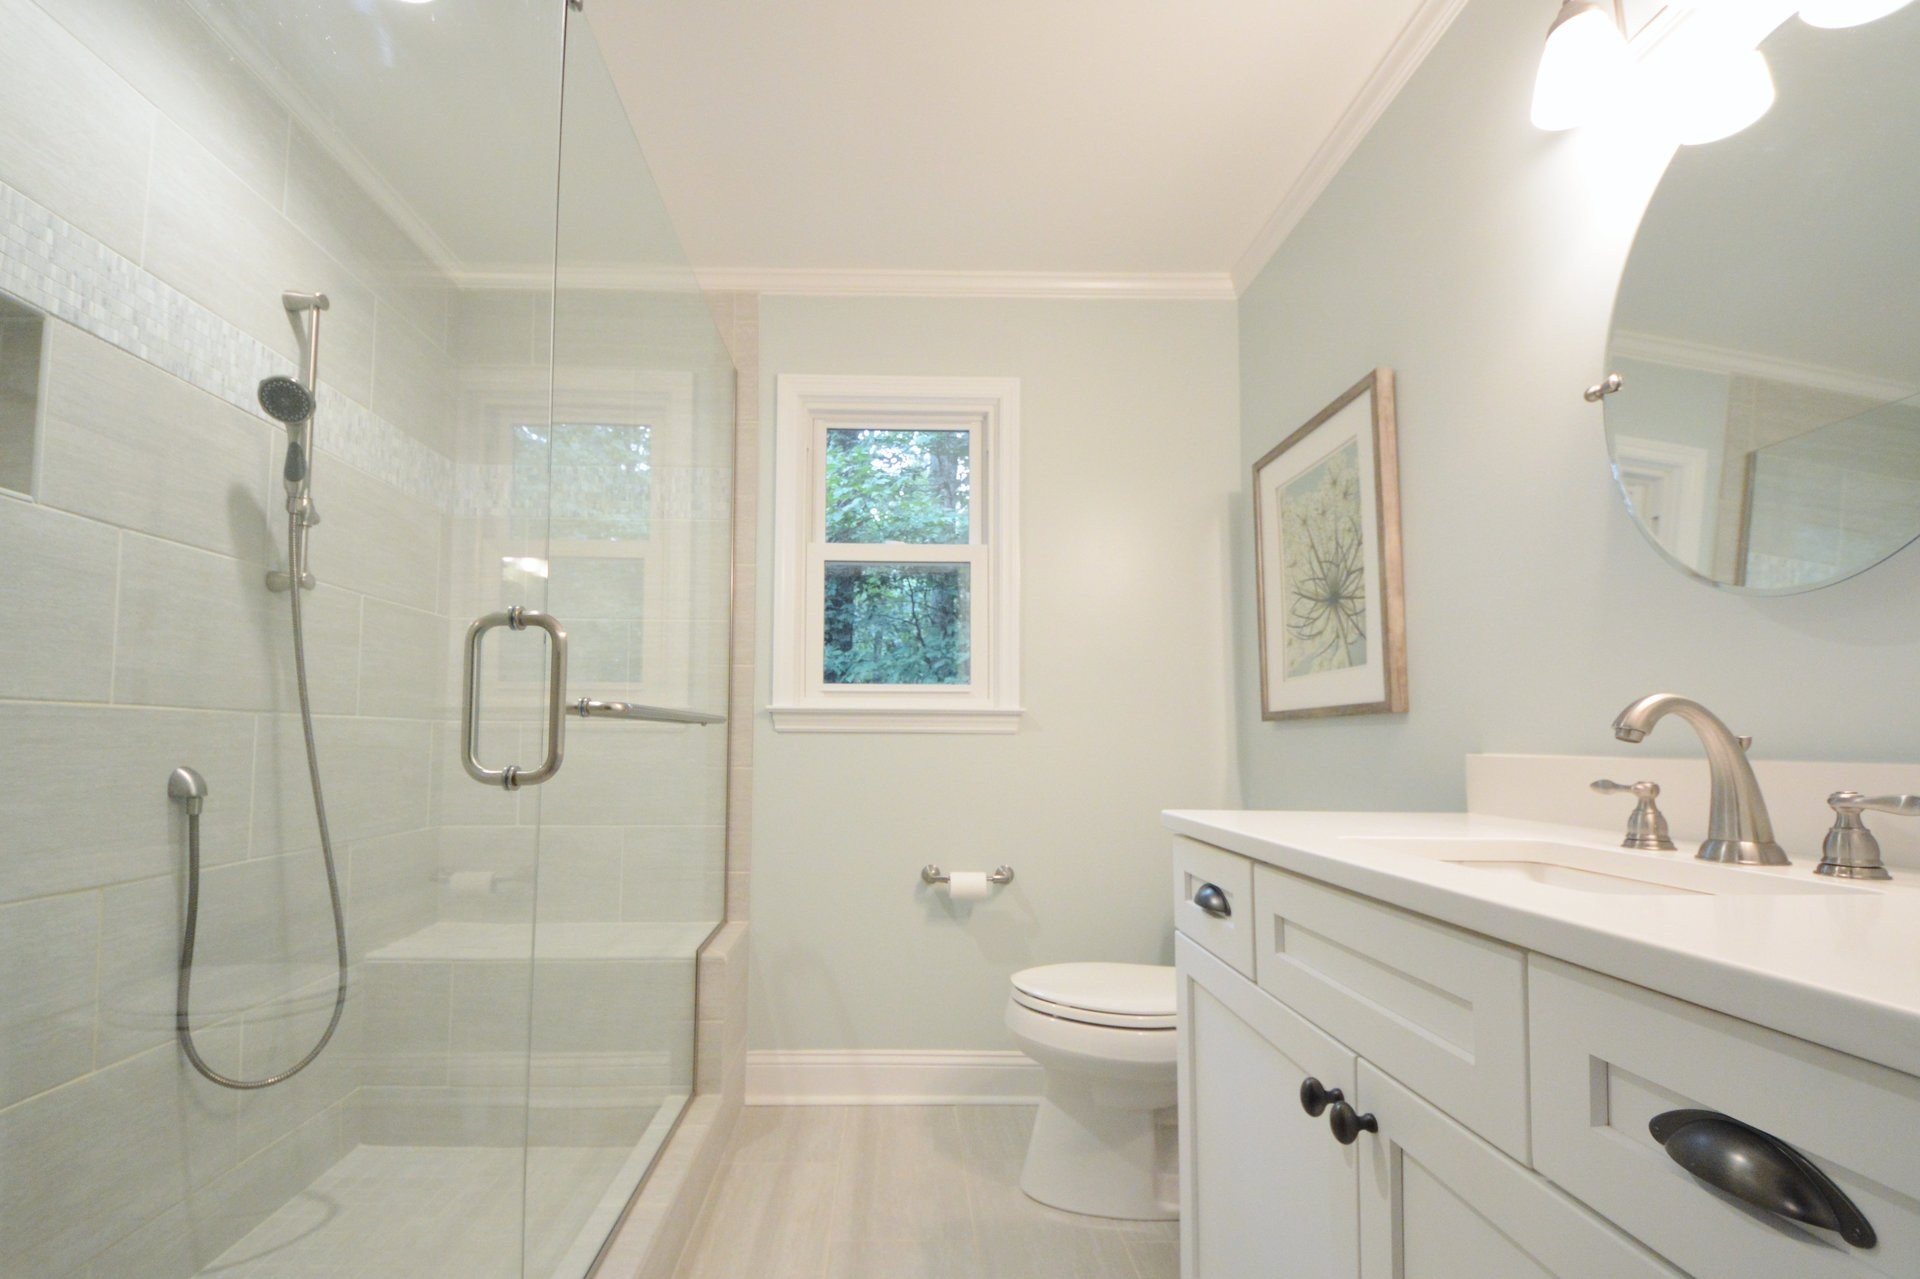 In shower seating and handheld showerhead make for an easy and safe routine.